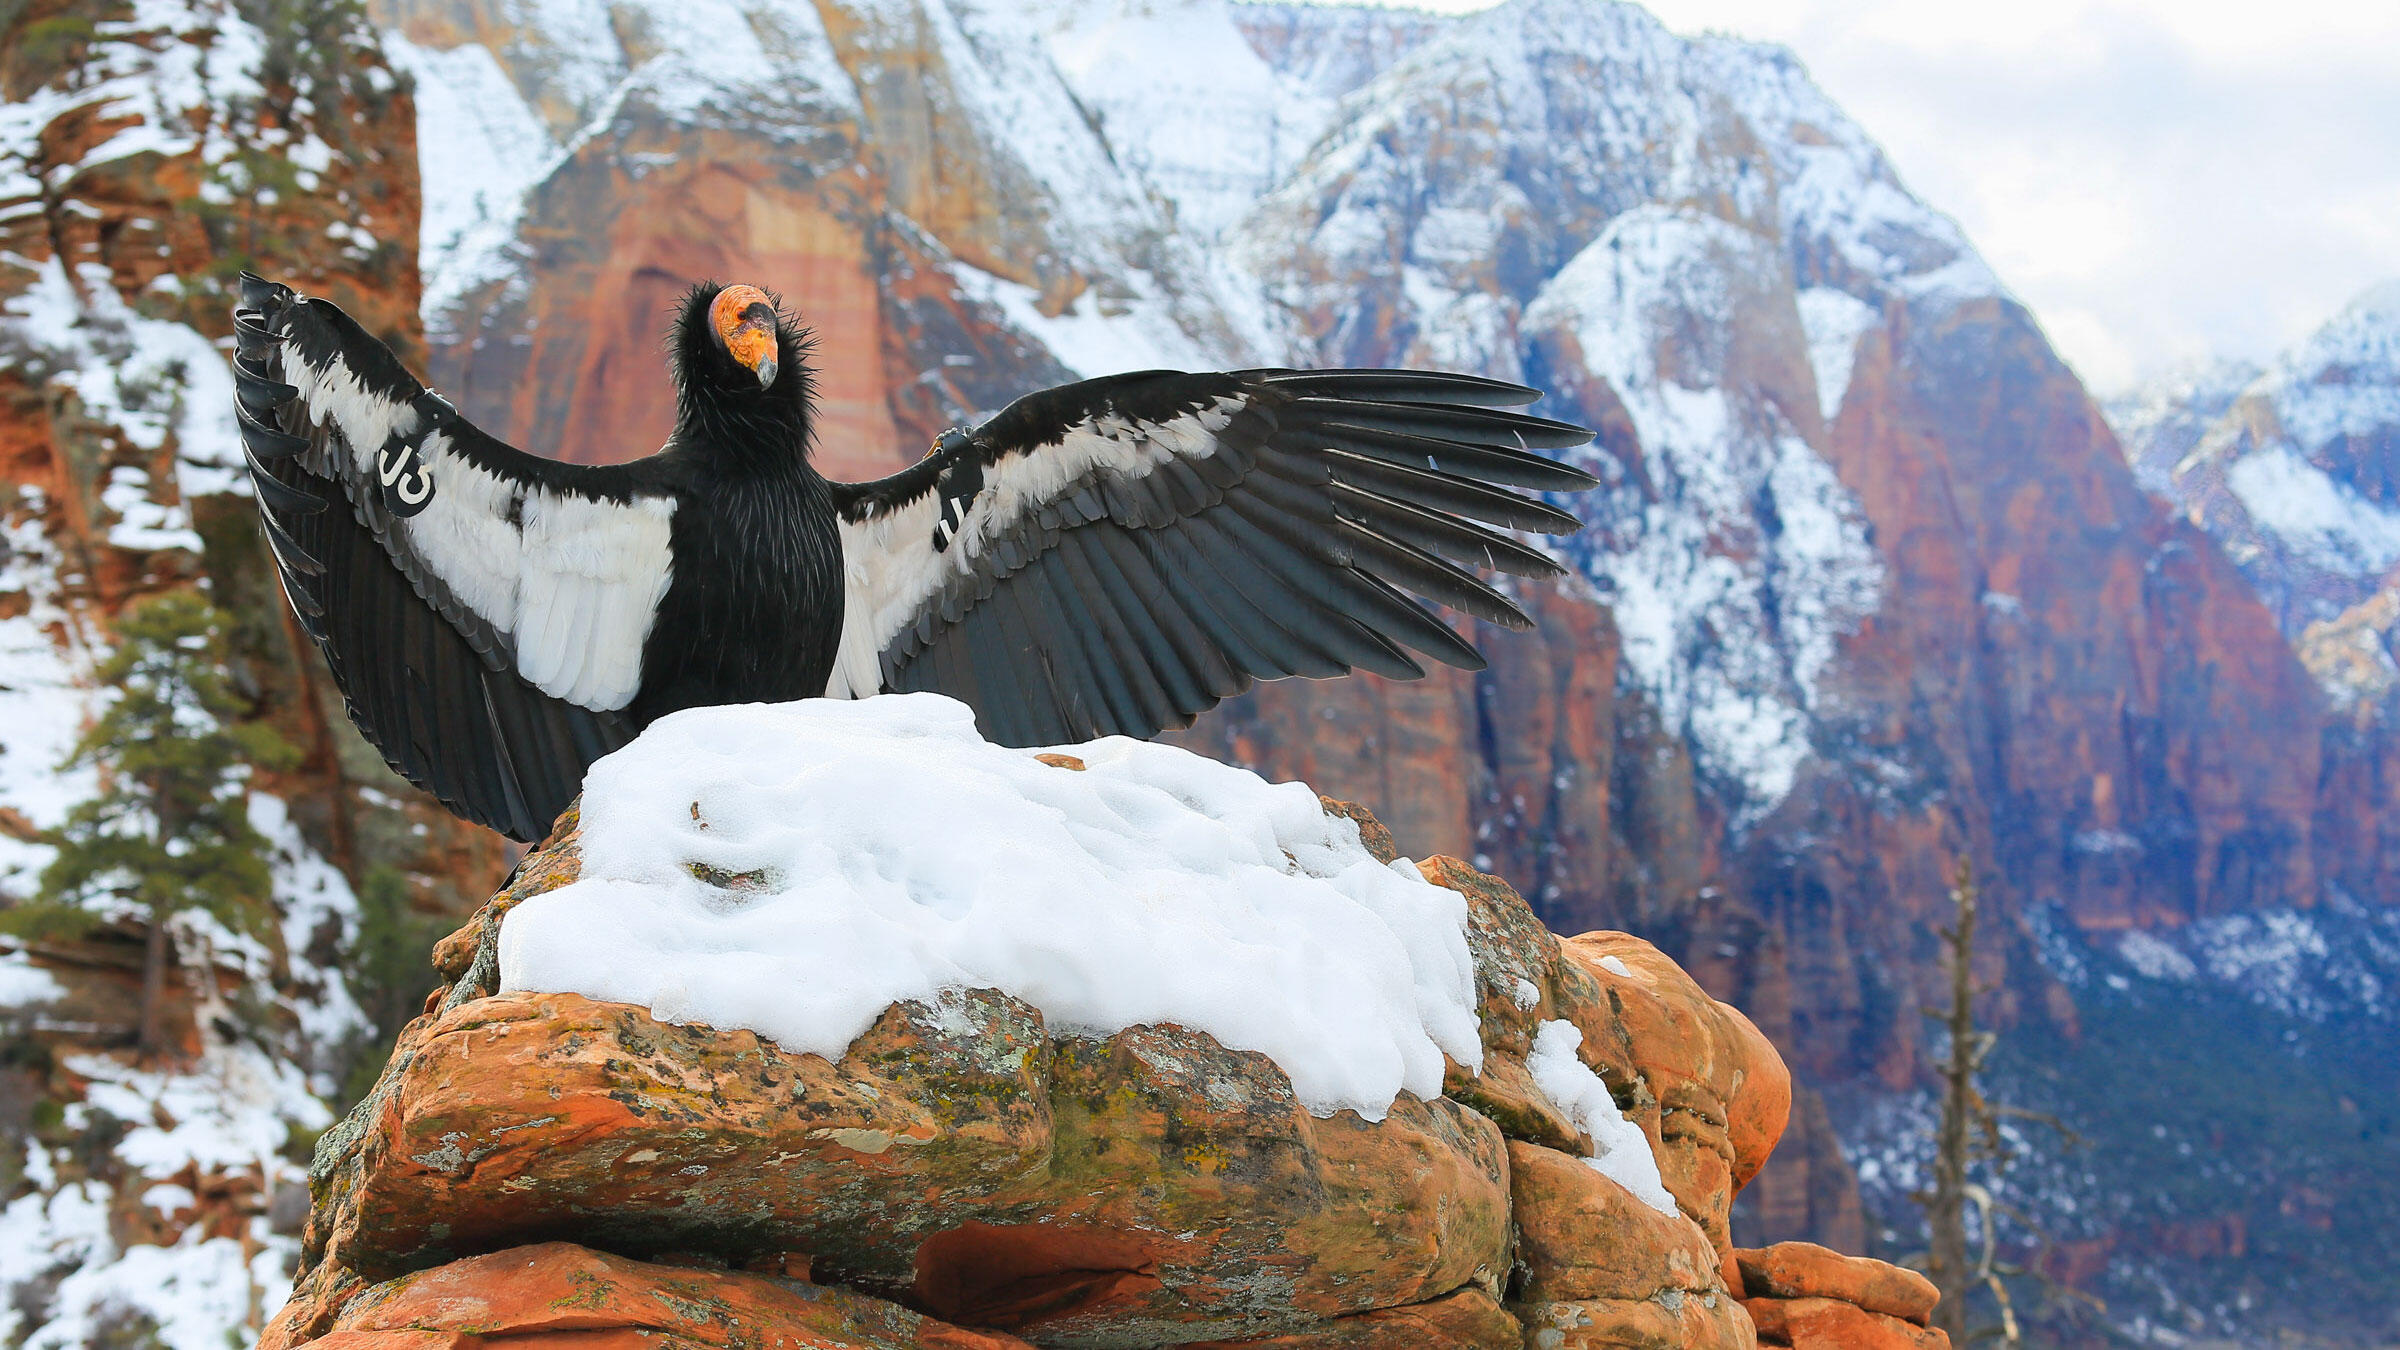 After a more than 100-year absence from Northern California, the California Condor might be reintroduced to its former range as soon as 2019. Madison Roberts/Audubon Photography Awards